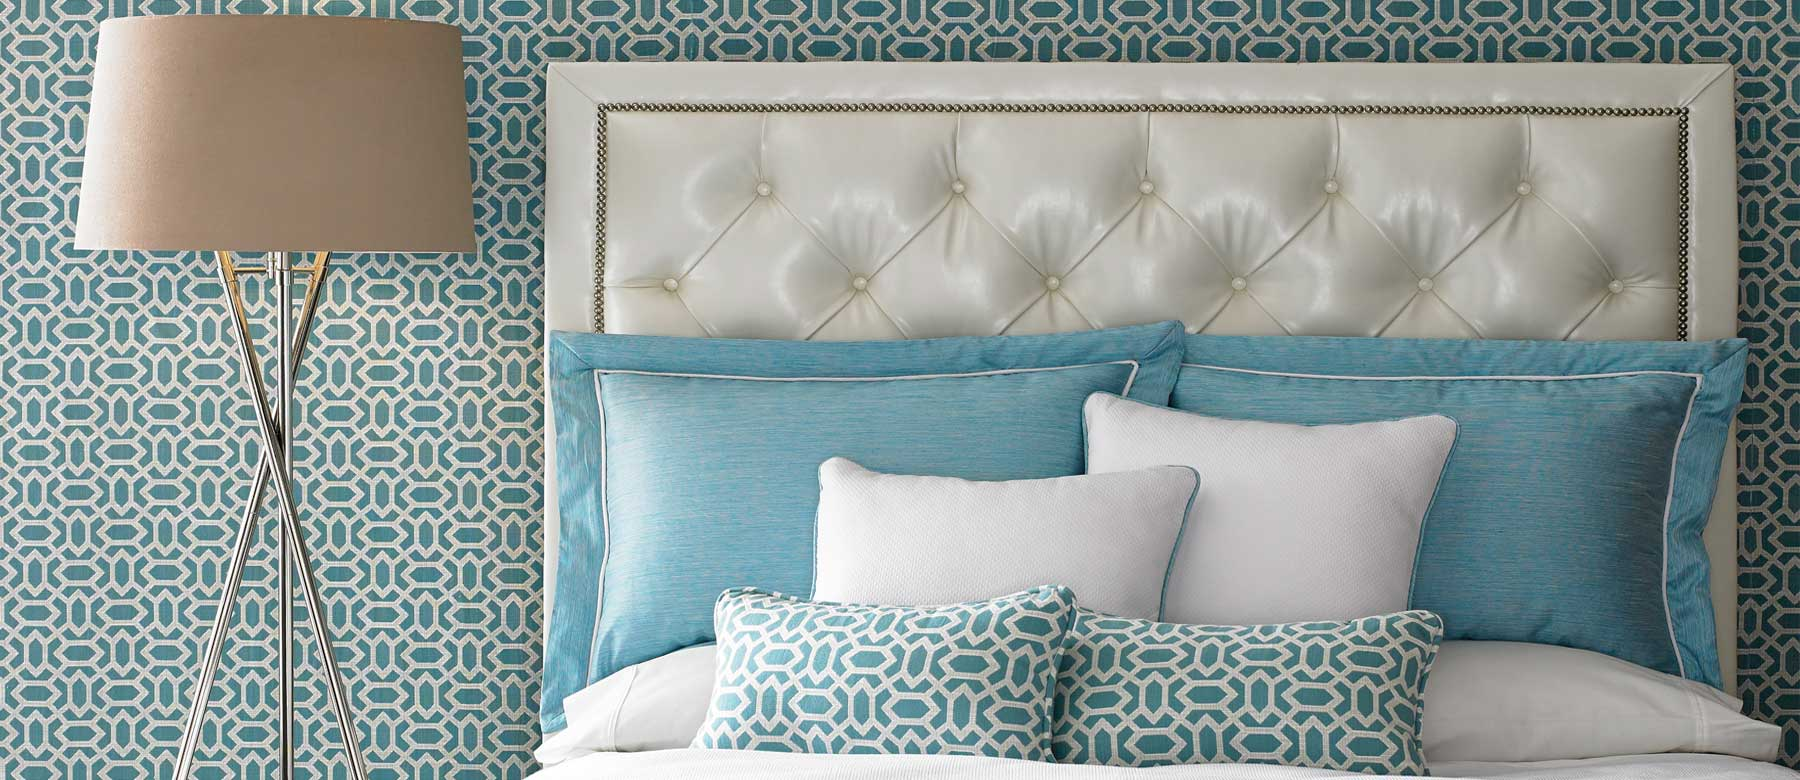 custom uppholstered headboard designs rockville interiors